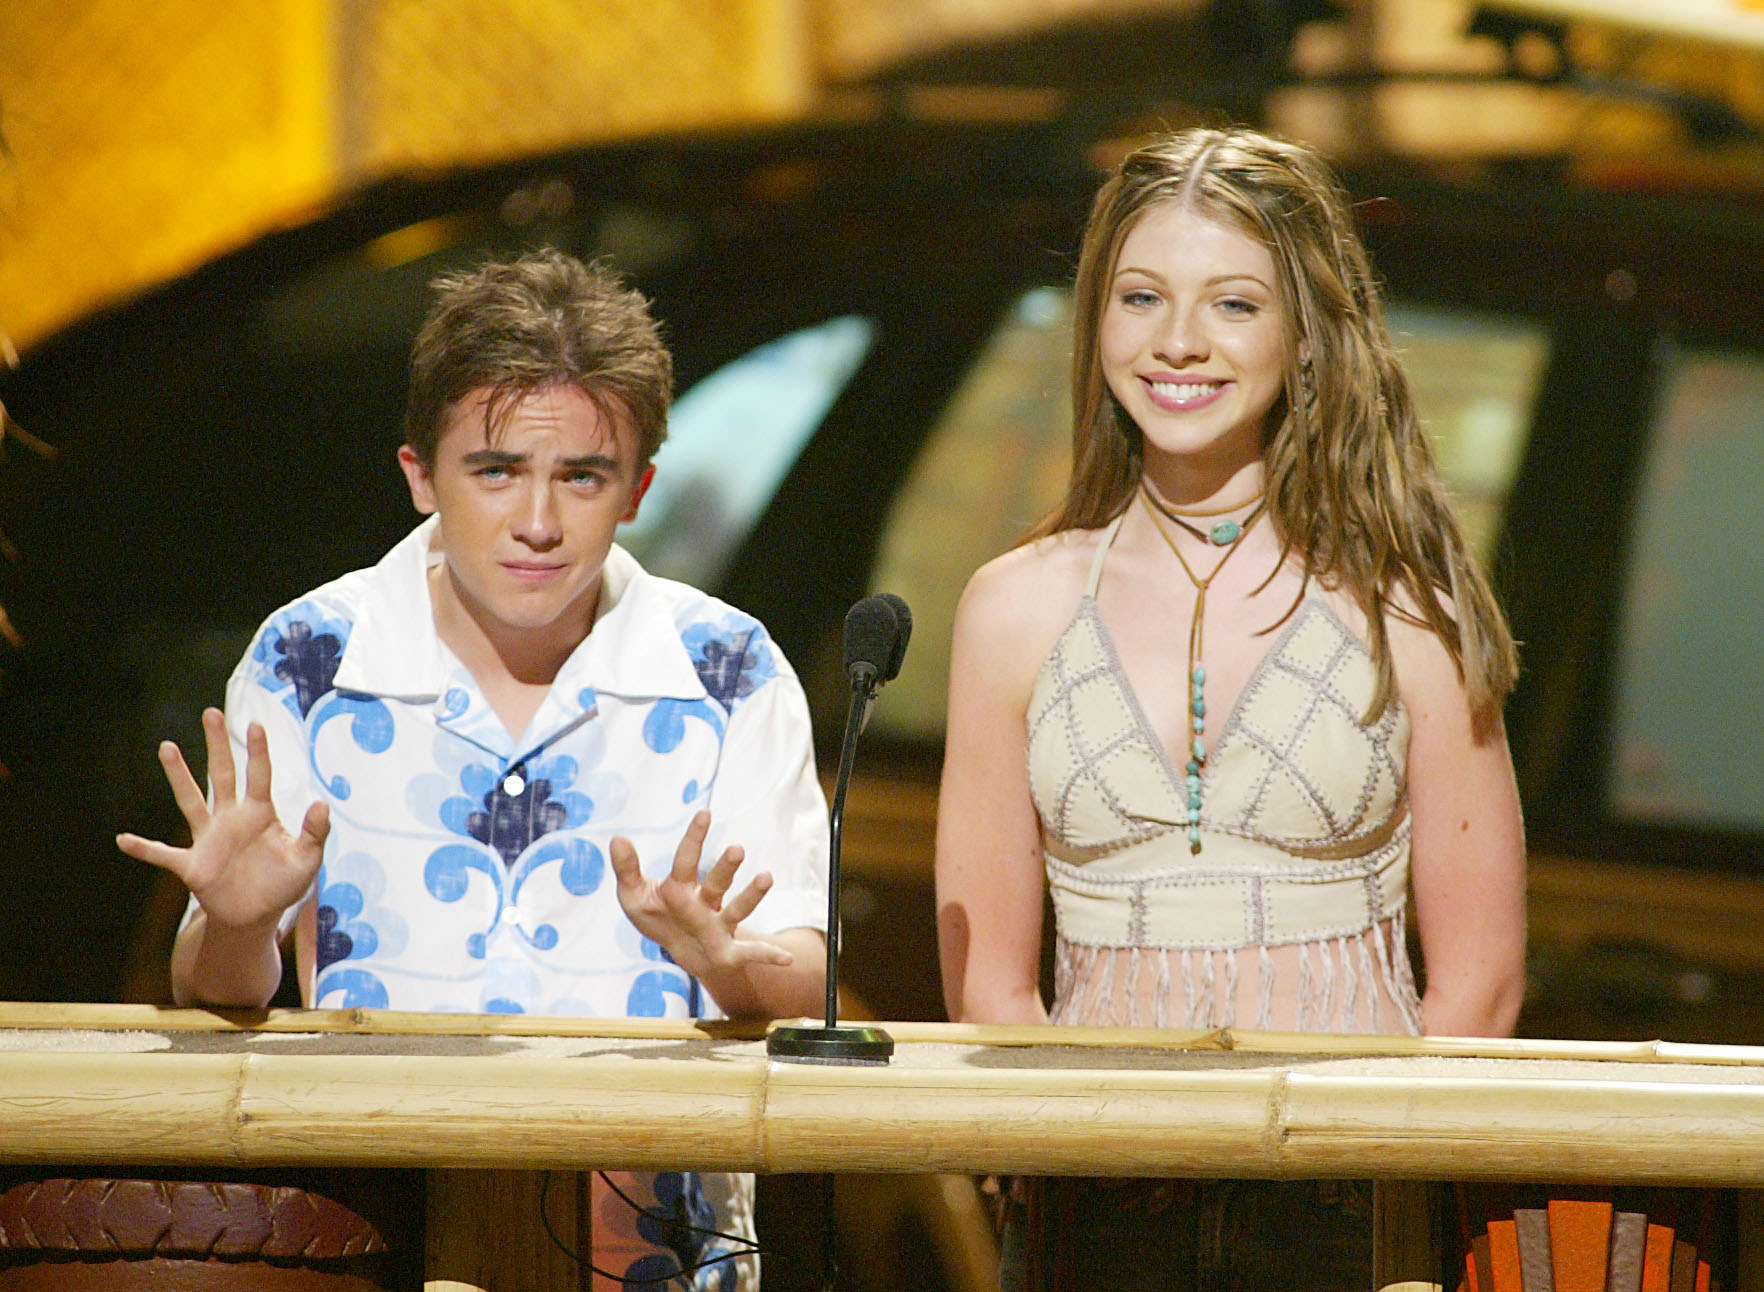 Frankie Muniz and Michelle Trachtenburg in a Hawaiian shirt and a crop top, respectively